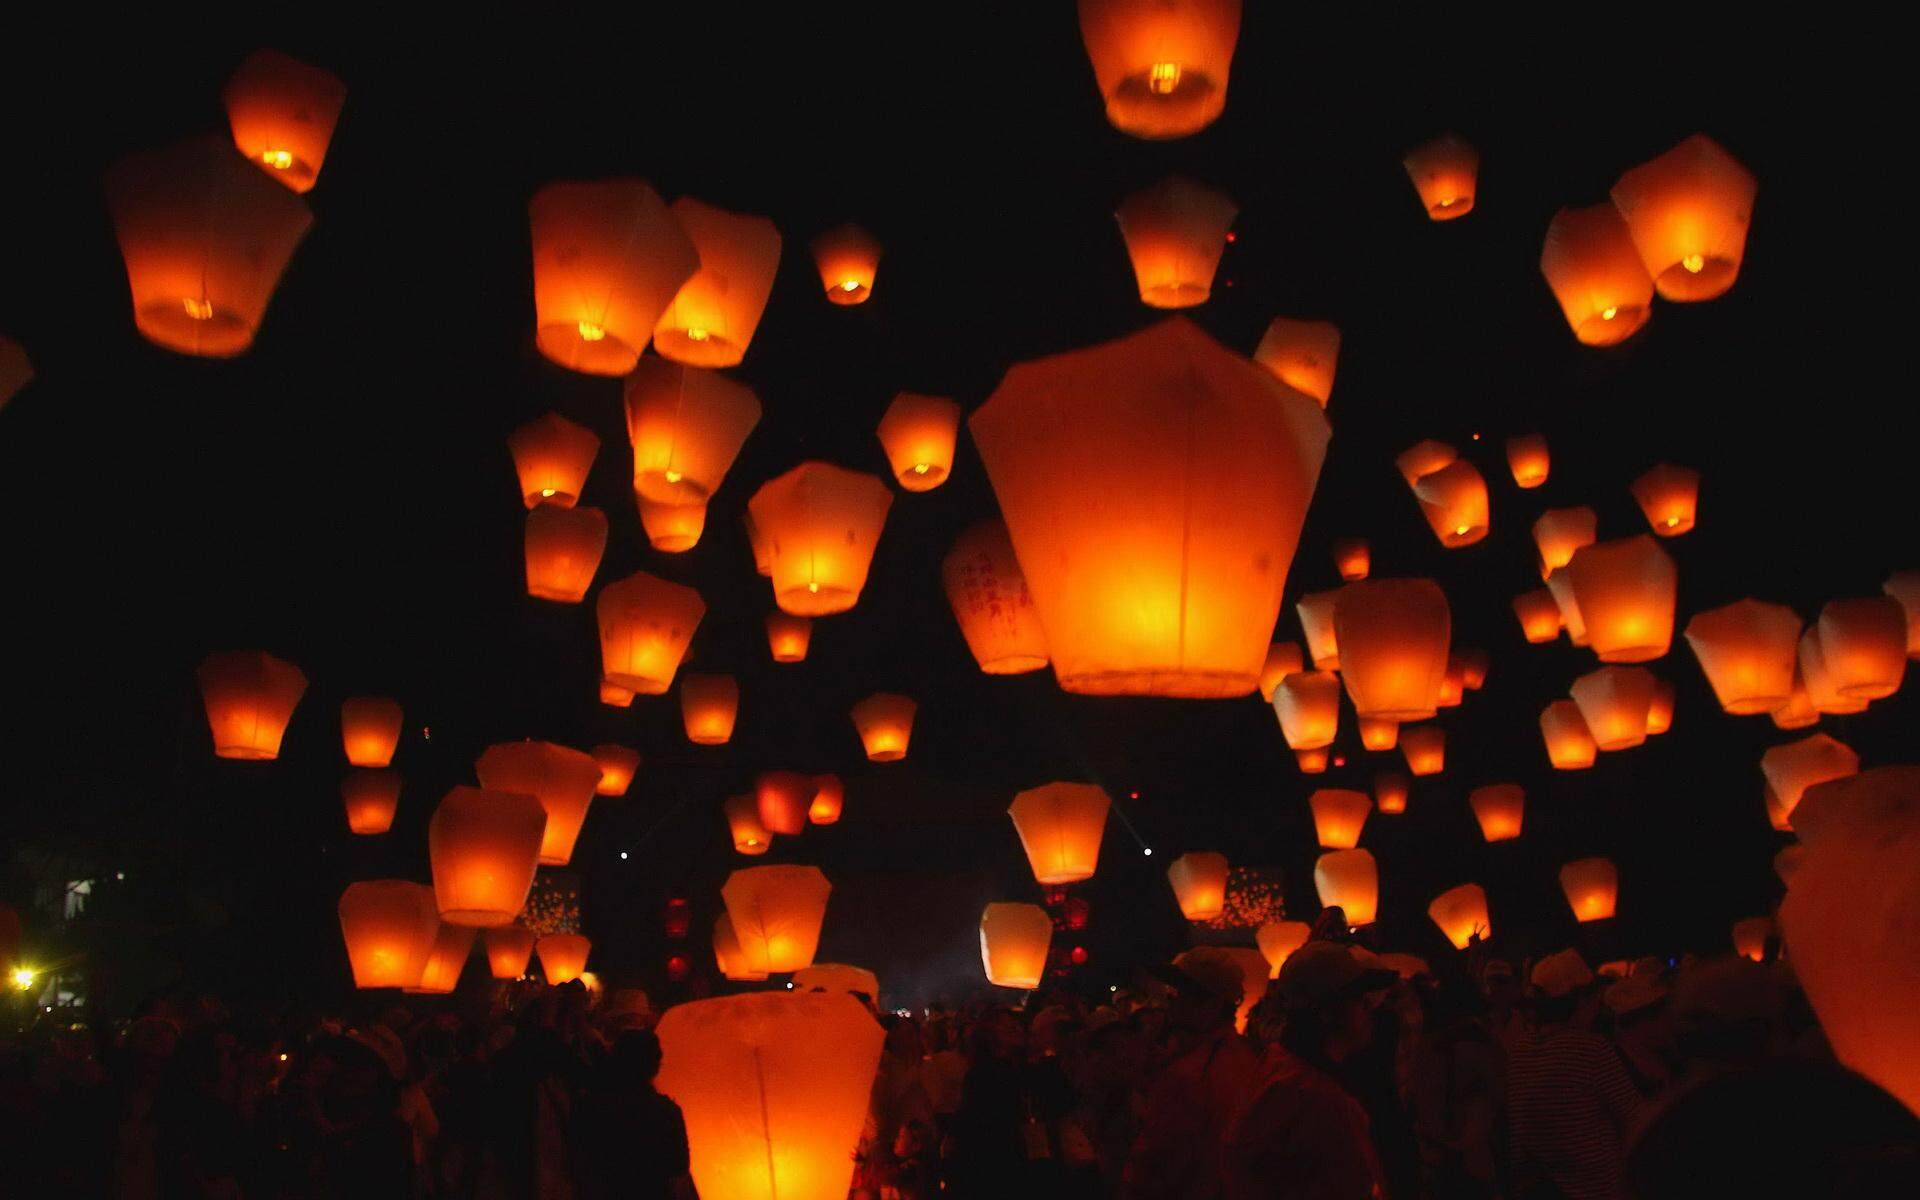 Buy Sell Cheapest Flying Sky Lanterns Best Quality Product Deals Lampion Terbang 10 Pcs Set Wishing Lamp Kong Ming Round Paper Chinese